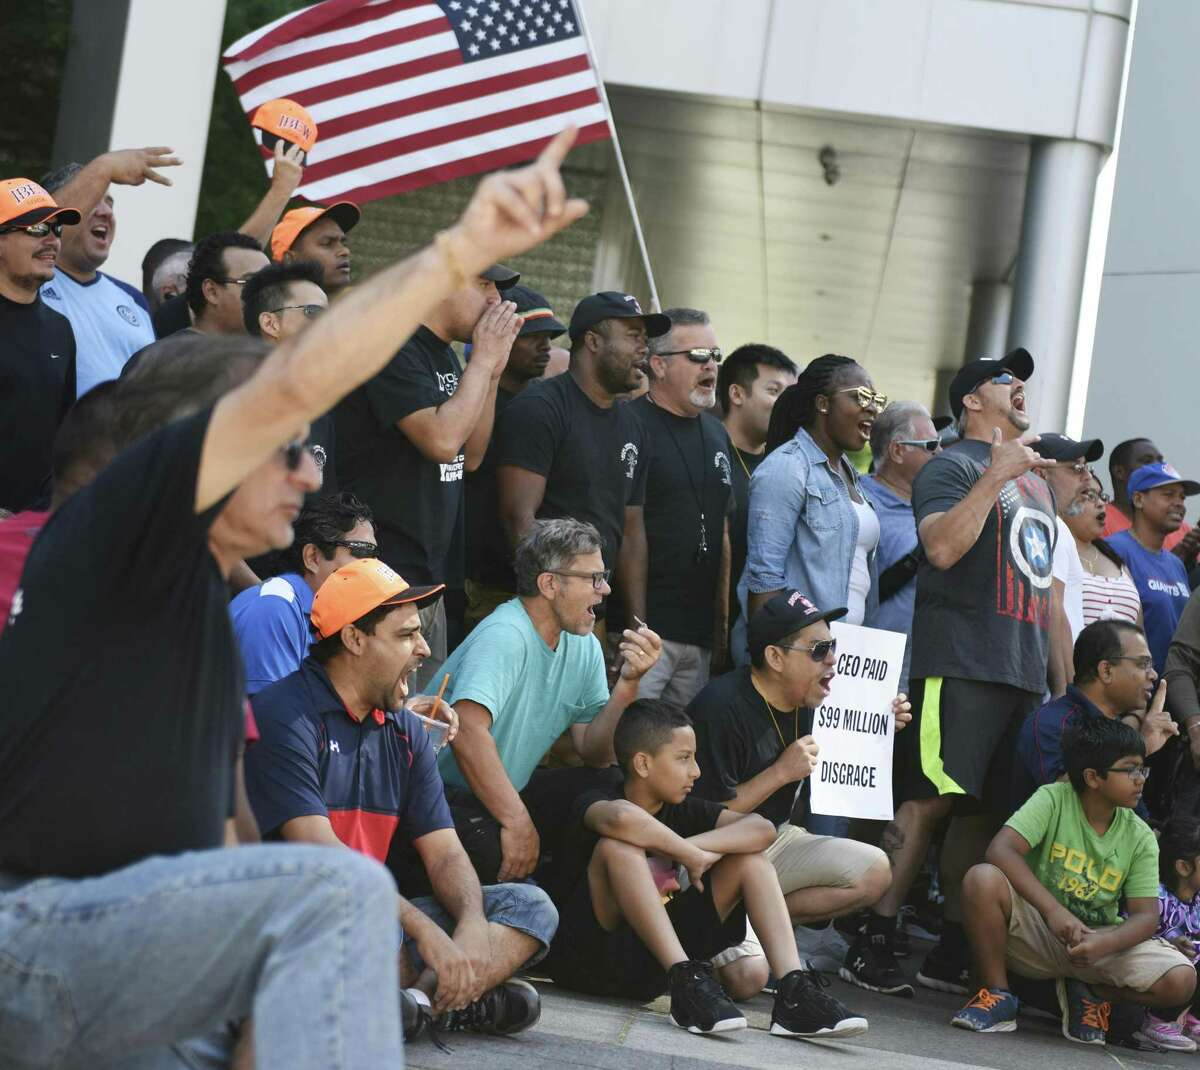 Members of the International Brotherhood of Electrical Workers' Local 3 chapter picket outside the Charter Communications headquarters at 400 Atlantic St., in downtown Stamford, Conn., on Aug. 9, 2017. Local 3 technicians have been on strike since March 28, 2017, over a disagreement about new contract terms.